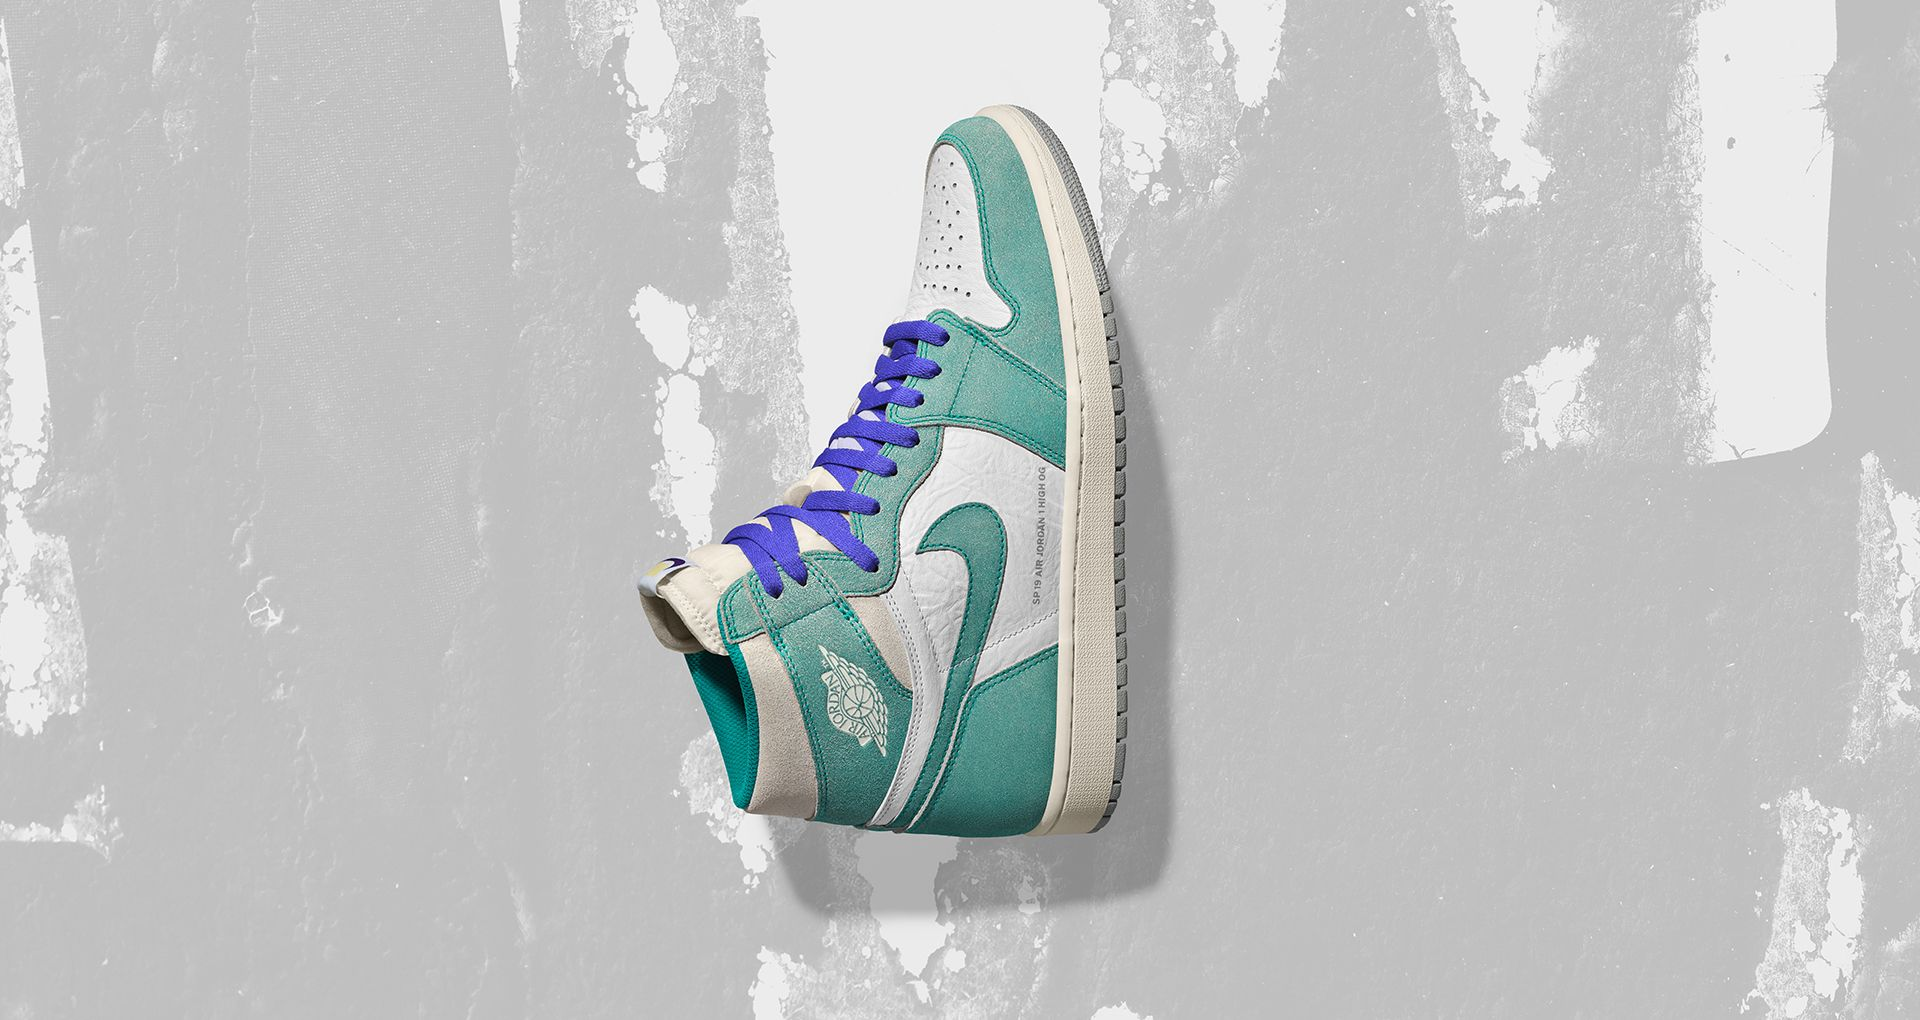 """9c14bbb5b51 Taking inspiration from the 90s and Charlotte Hornets, the Air Jordan I  """"Flight Nostalgia"""" pays tribute to the city for hosting its first NBA All  Star game."""